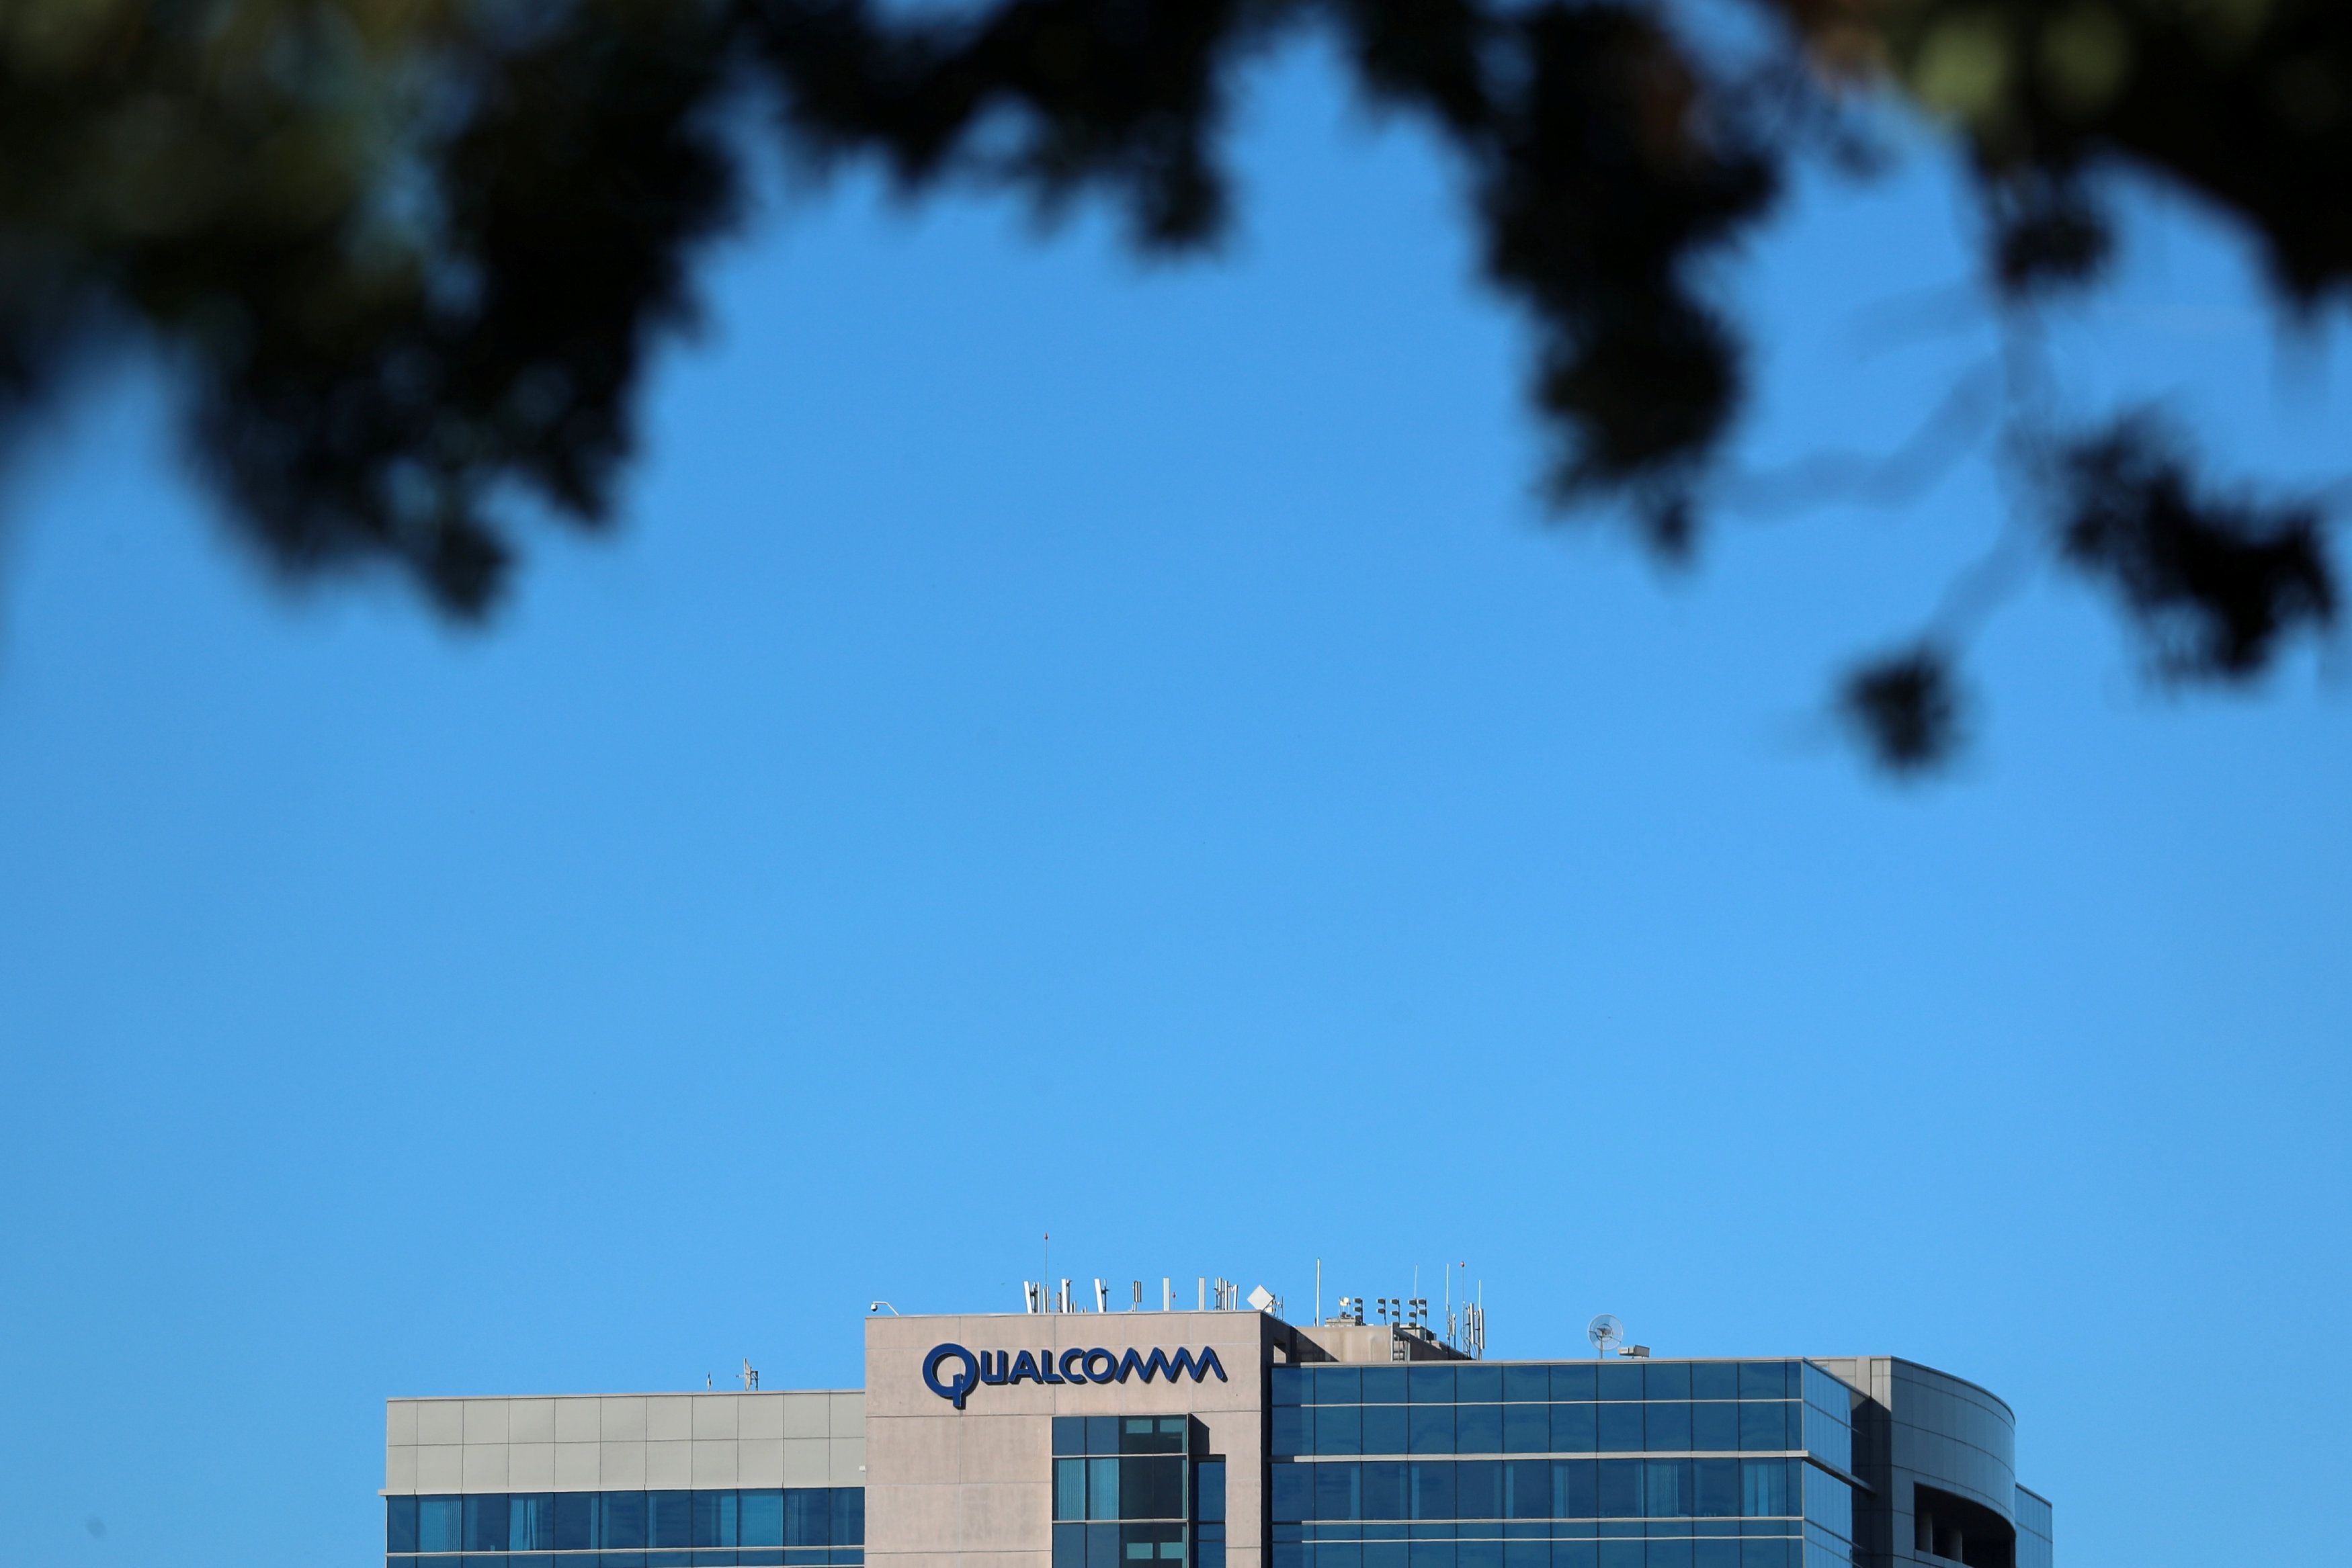 A  building on the Qualcomm campus is seen, as chip maker Broadcom Ltd announced an unsolicited bid to buy peer Qualcomm Inc for $103 billion, in San Diego, California, U.S. November 6, 2017. REUTERS/Mike Blake